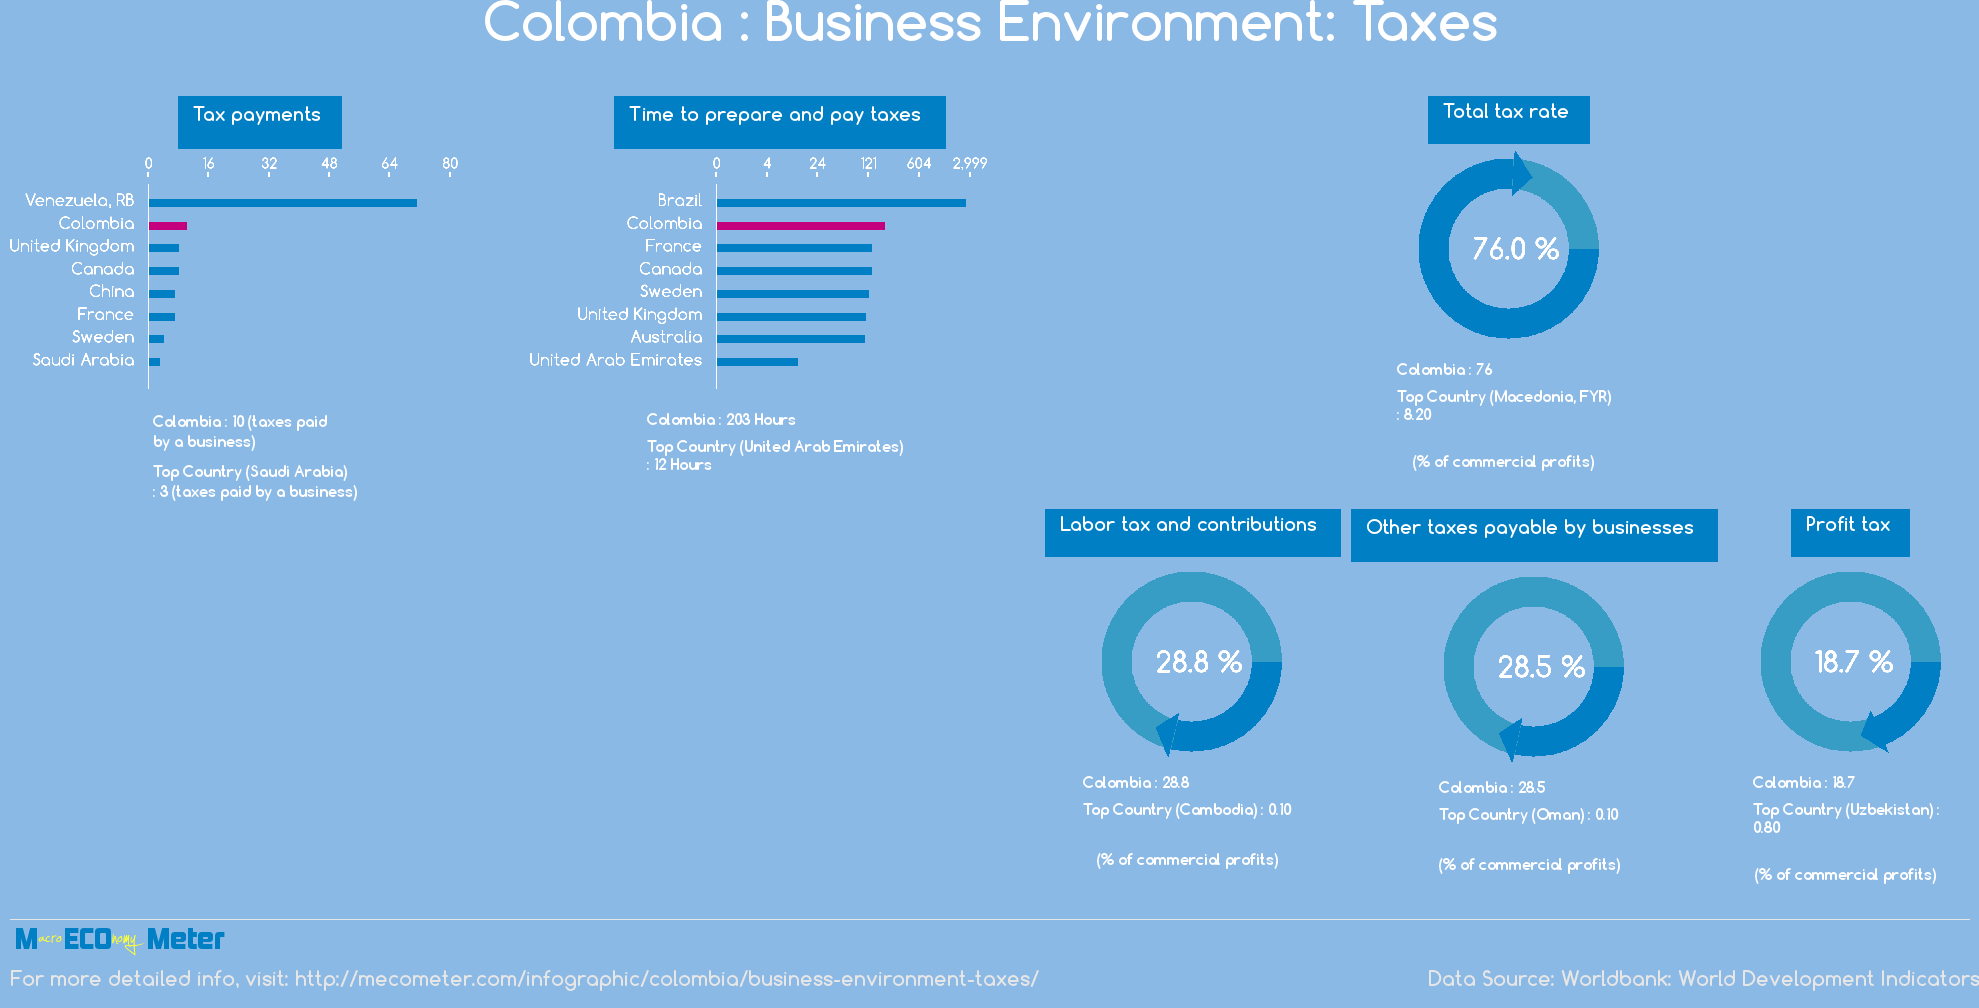 Colombia : Business Environment: Taxes